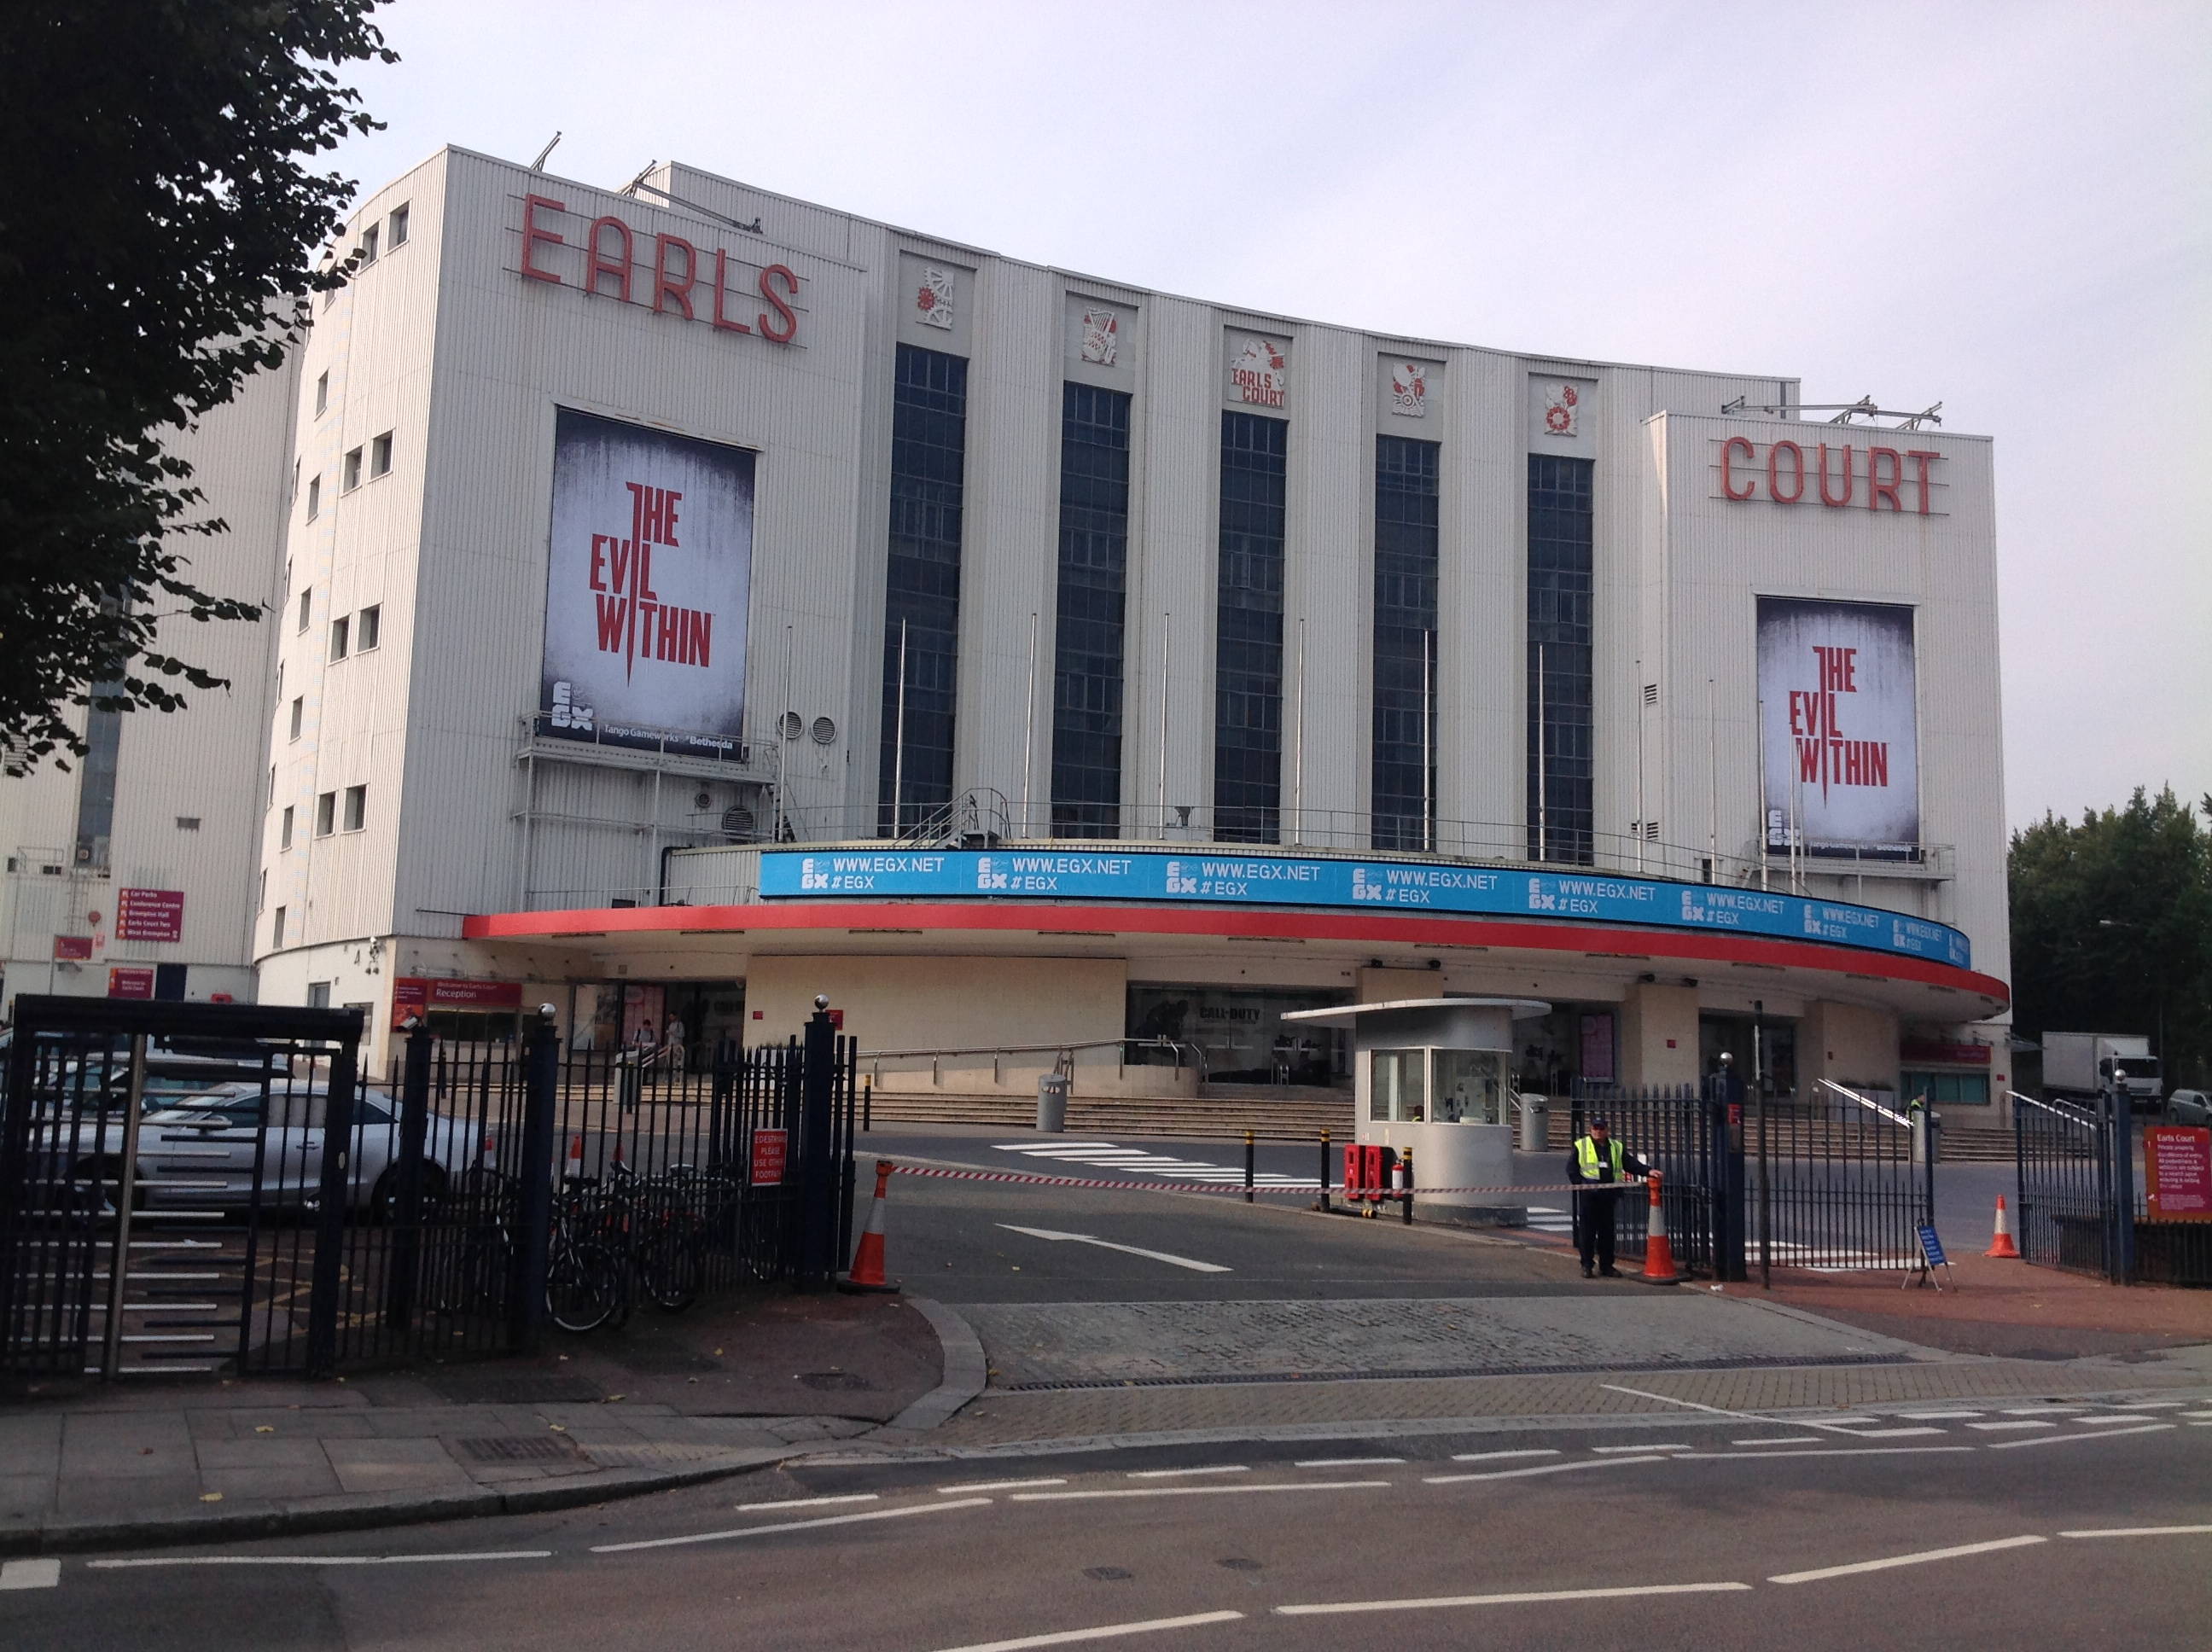 The Earls Court Exhibition Centre (Earls Court One) under ...